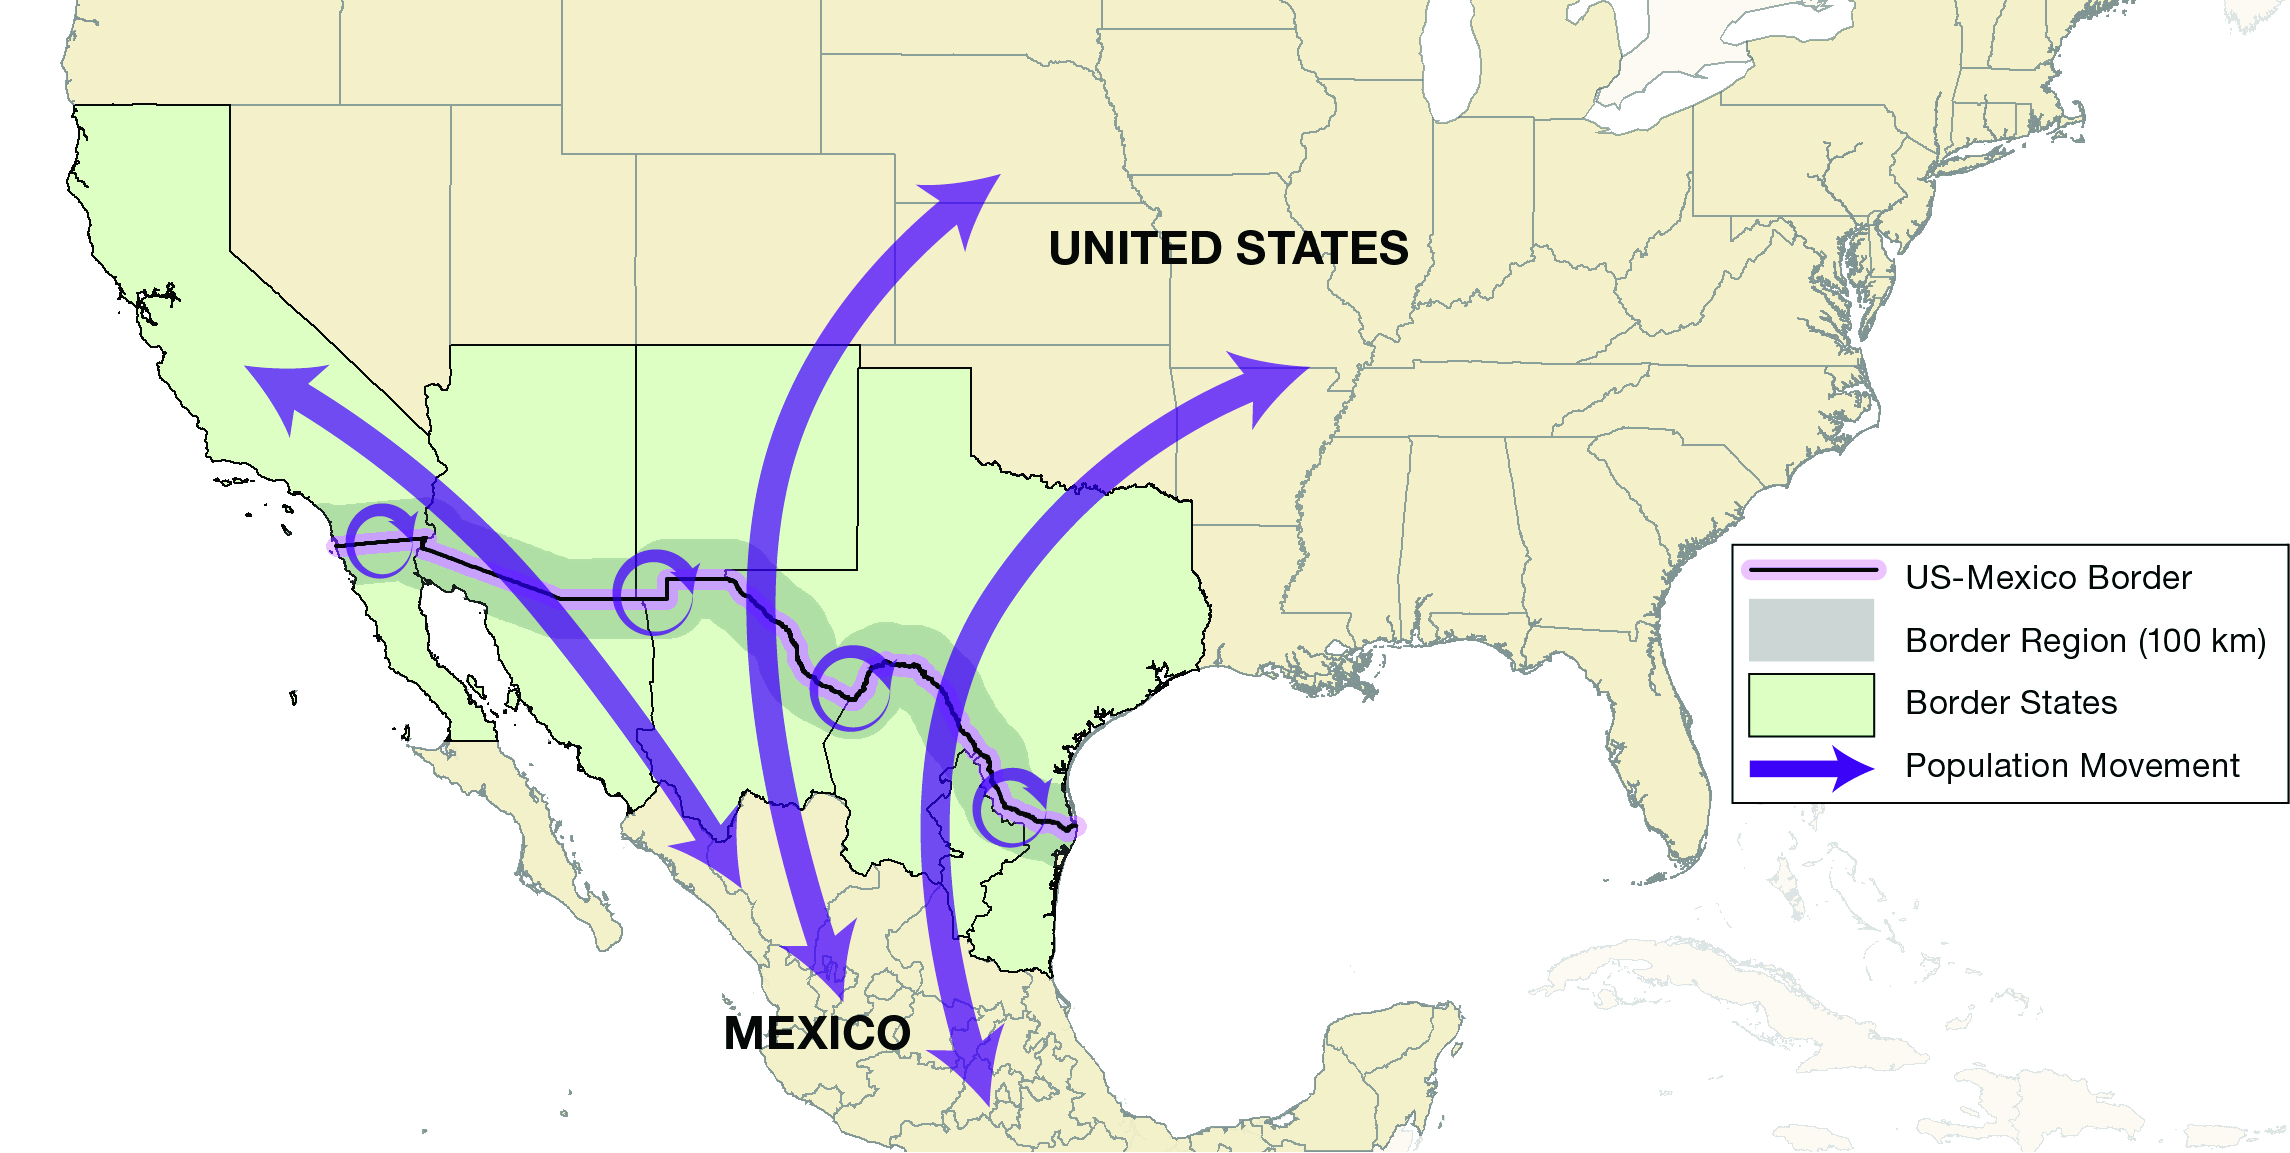 map of the united states and mexico with a focus on the 4 border states